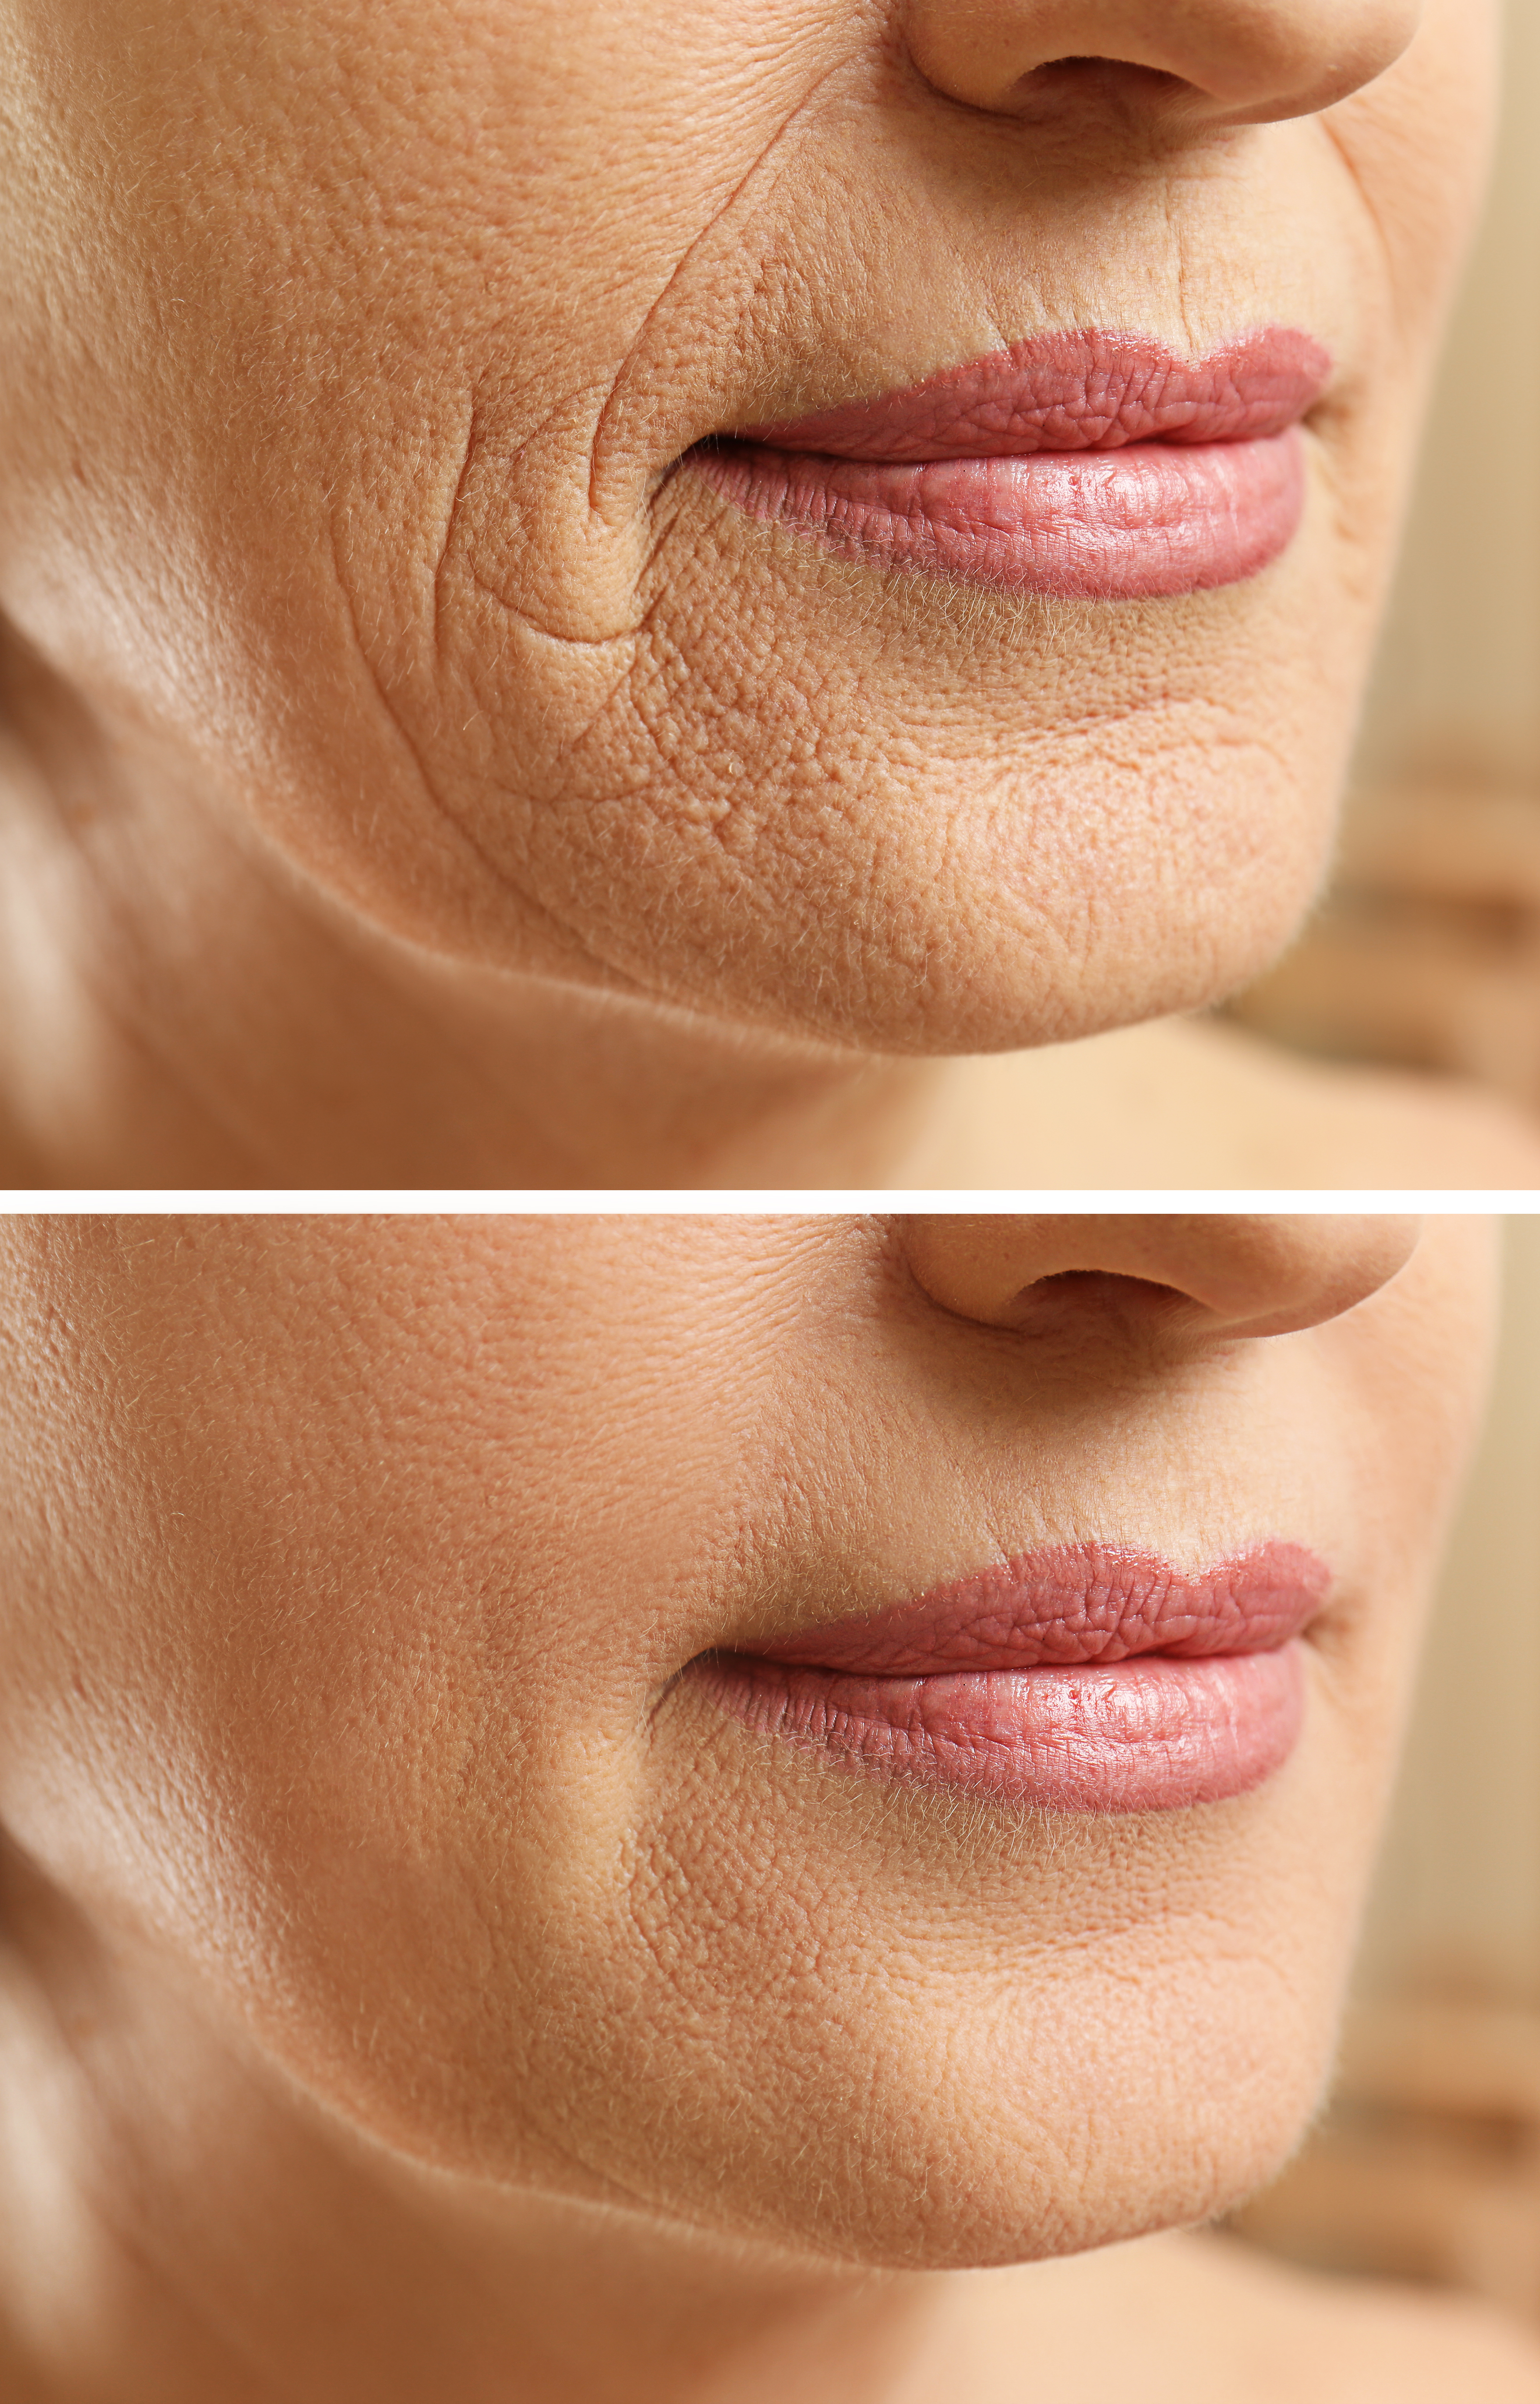 Mature woman face before and after cosmetic procedure.jpg Plastic surgery concept